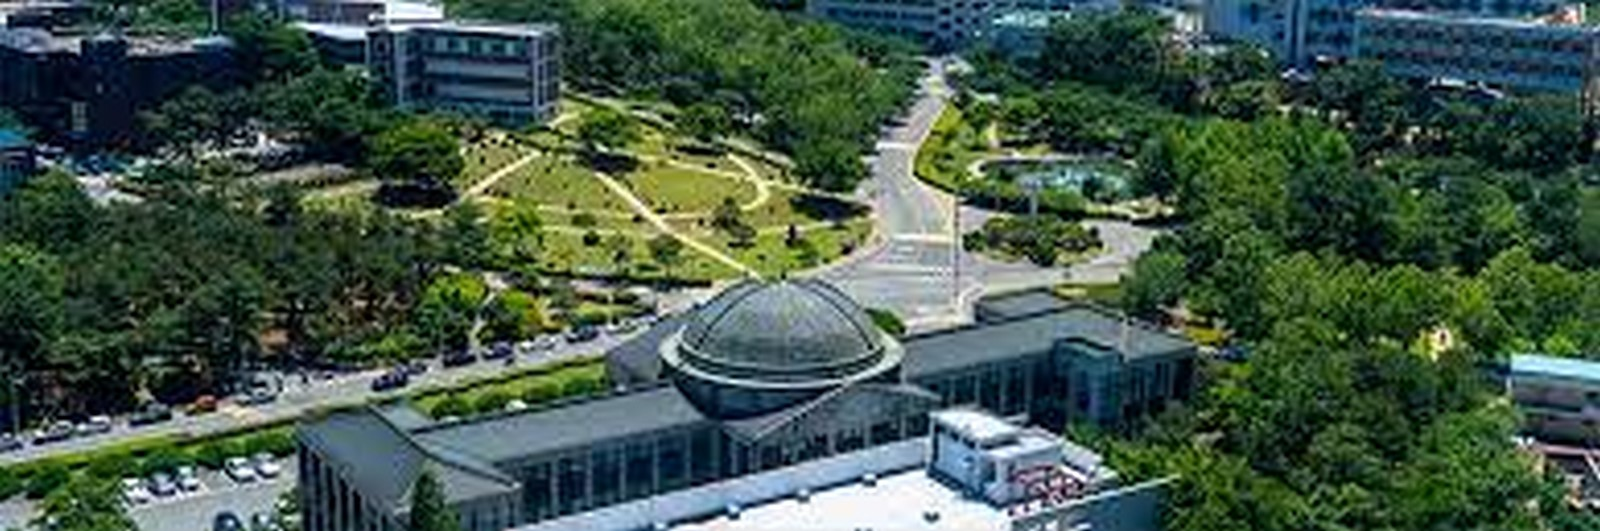 15 Colleges in South Korea offering Bachelor's degree in Architecture Sheet10